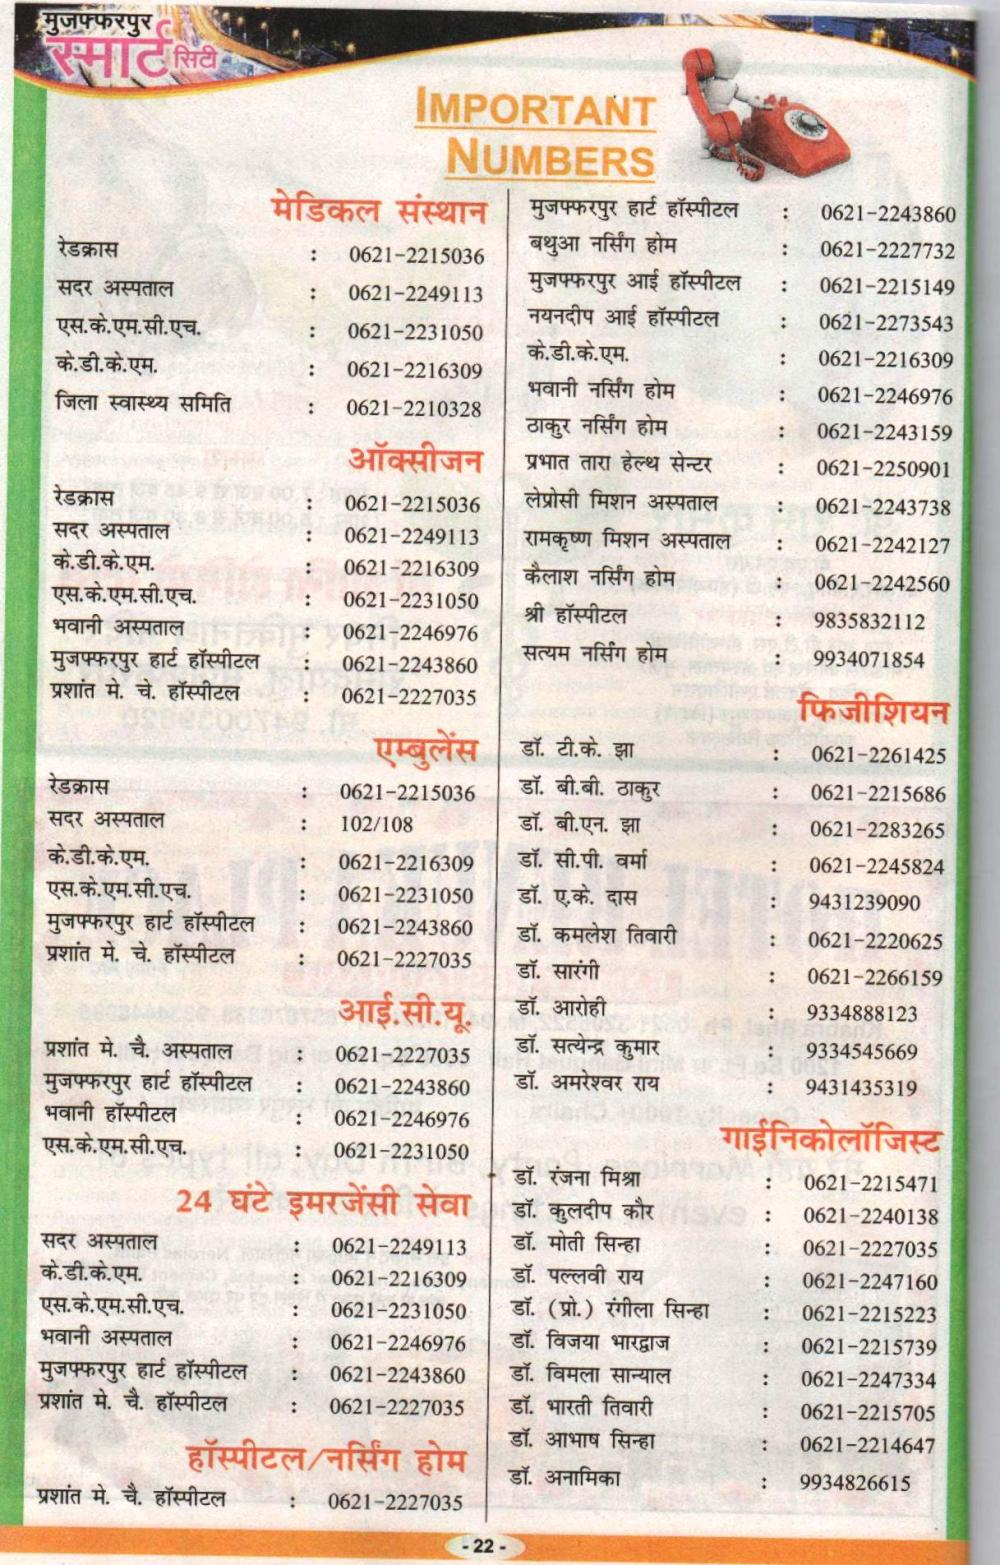 muzaffarpur smart city magazine (10)